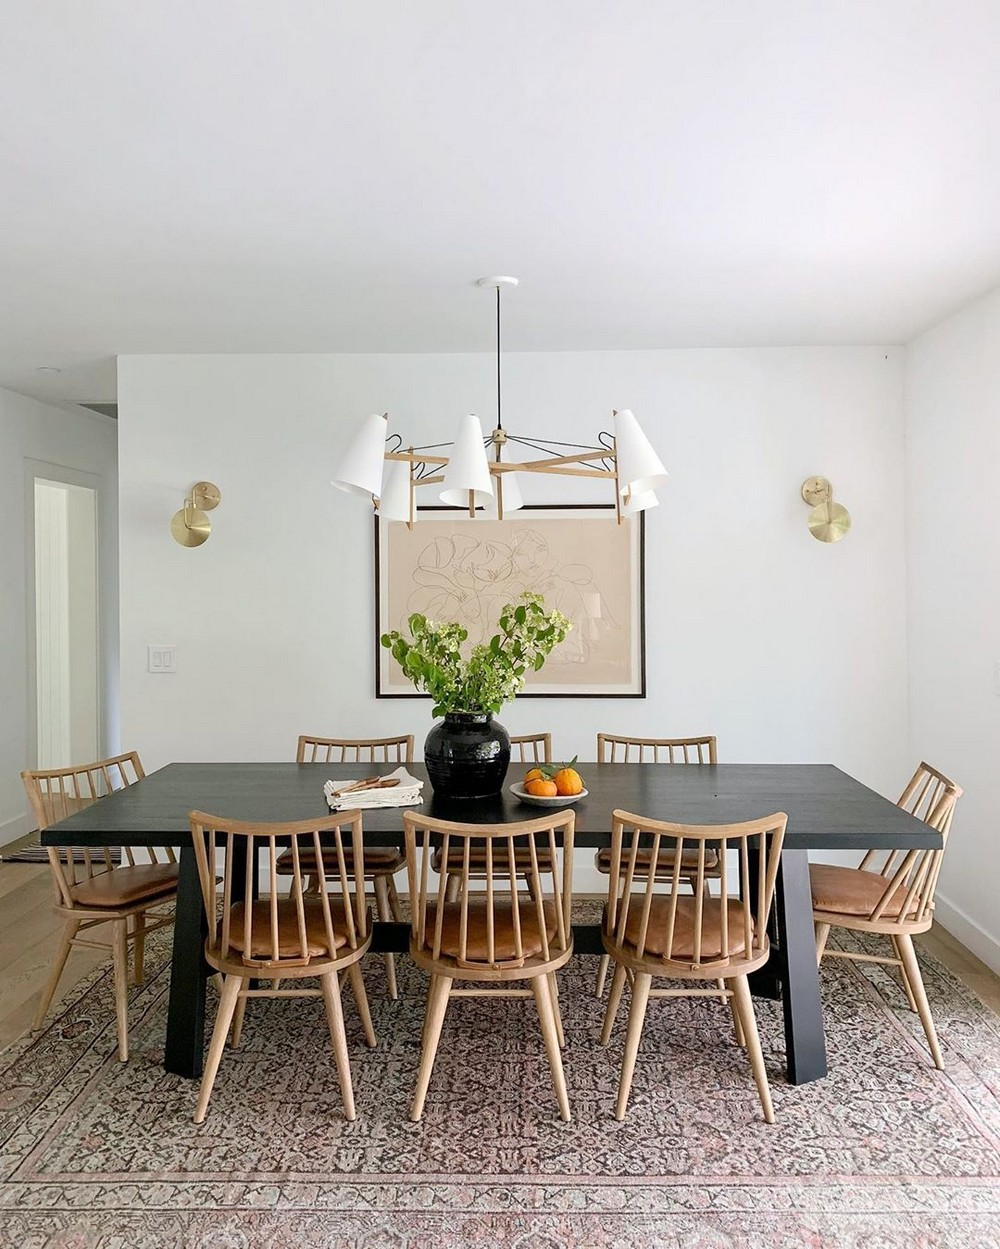 A Laid Back California Aesthetic: Dining Rooms by Amber Interiors amber interiors A Laid Back California Aesthetic: Dining Rooms by Amber Interiors 4 amber lewis